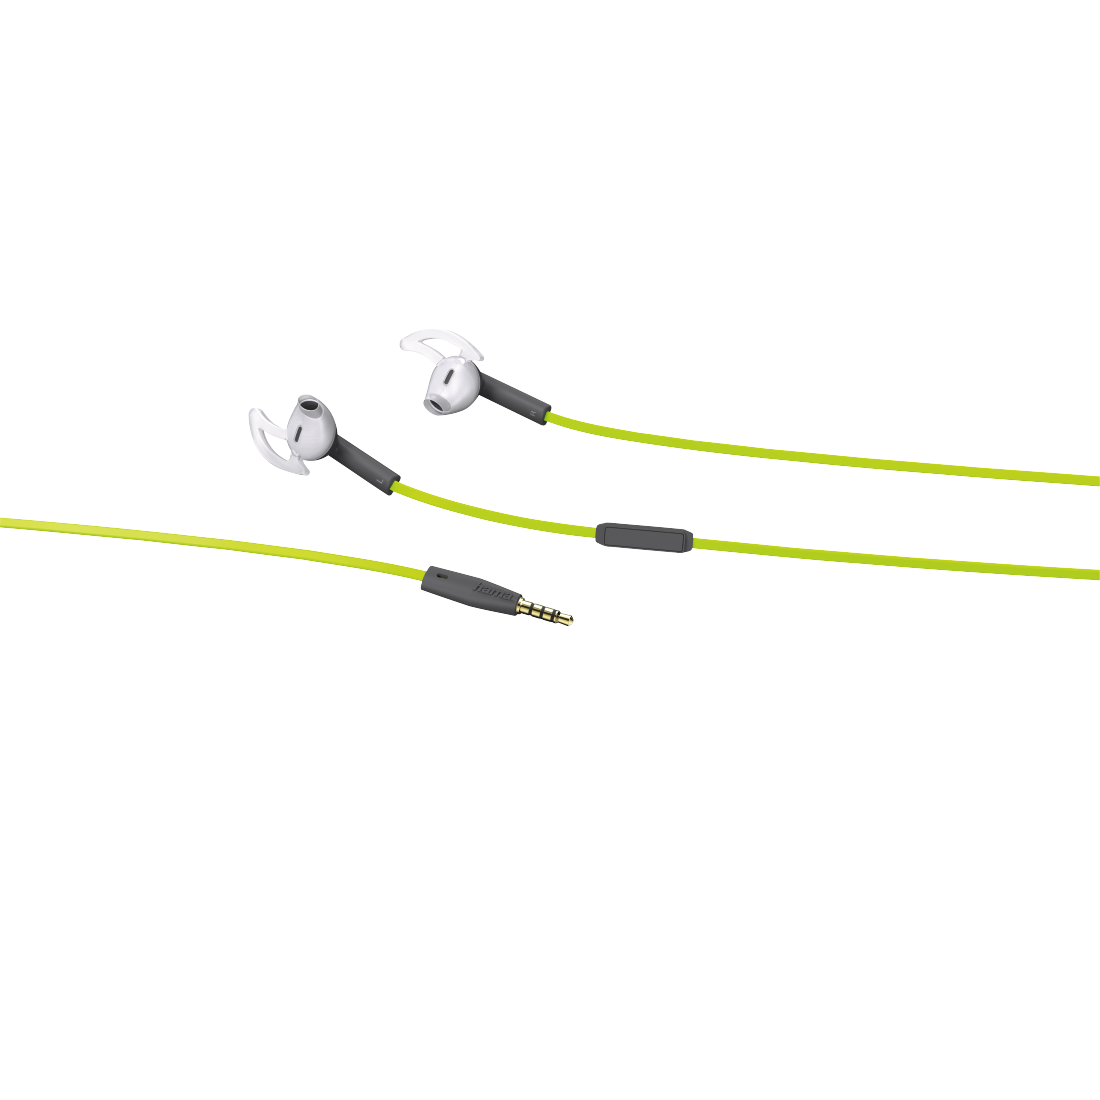 abx2 High-Res Image 2 - Hama, Action + Stereo Earphones, green/grey